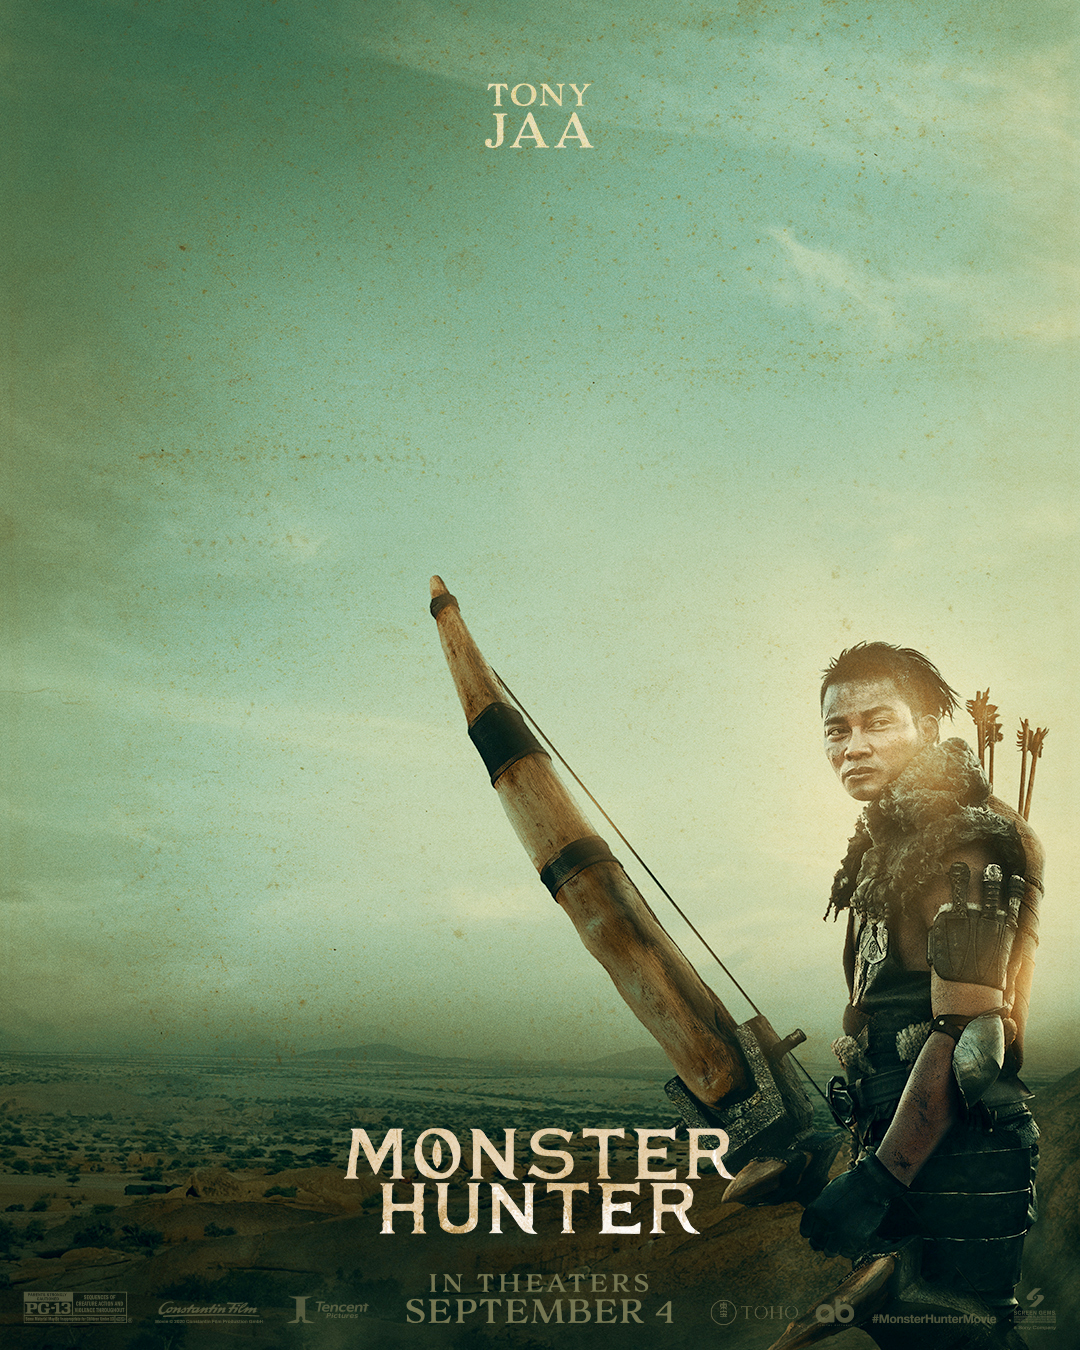 Monster Hunter Tony Jaa